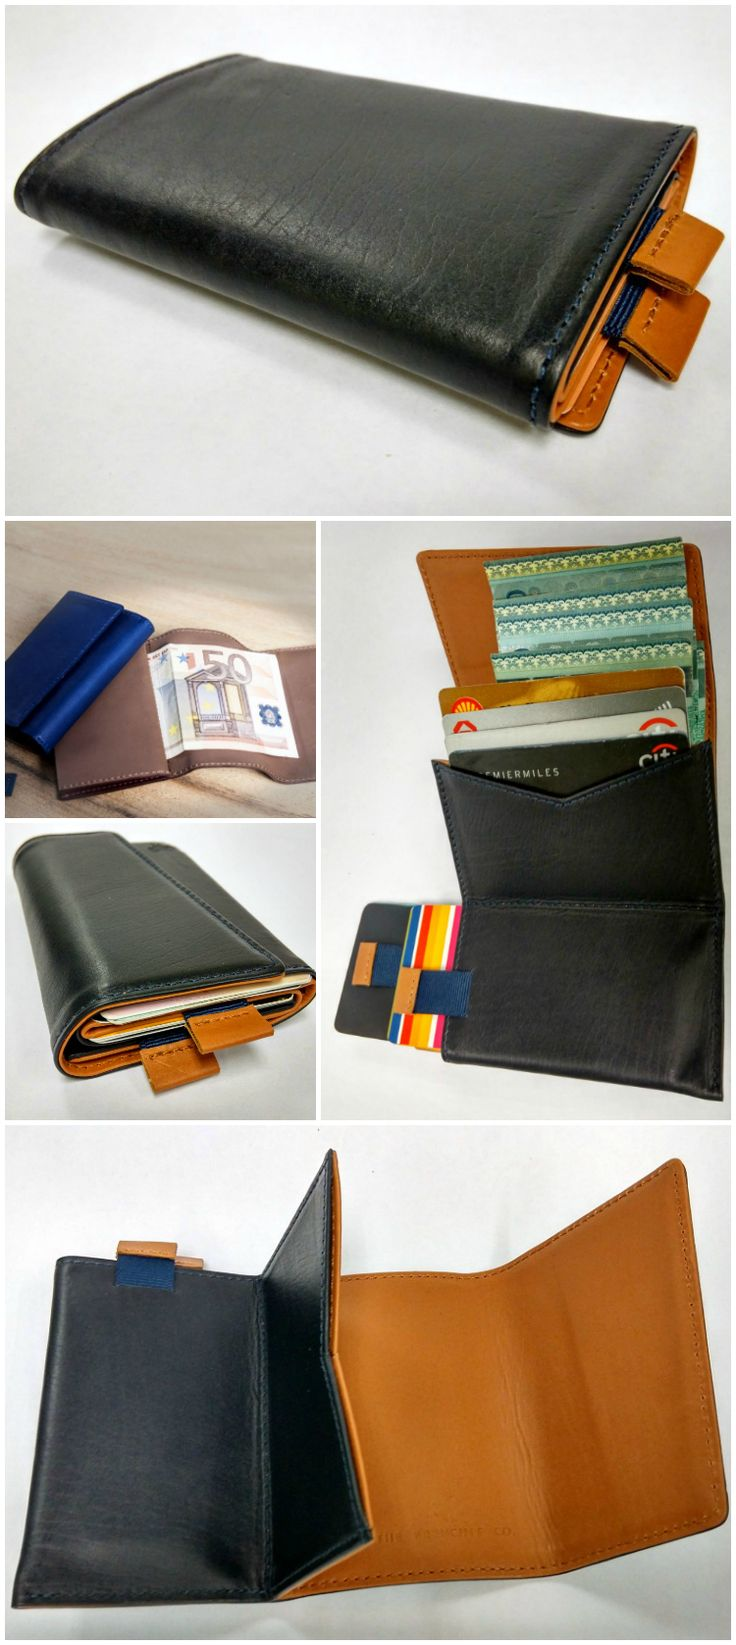 Leather Slimfold Wallet - War and Peace by VIDA VIDA G2DTdTbOb